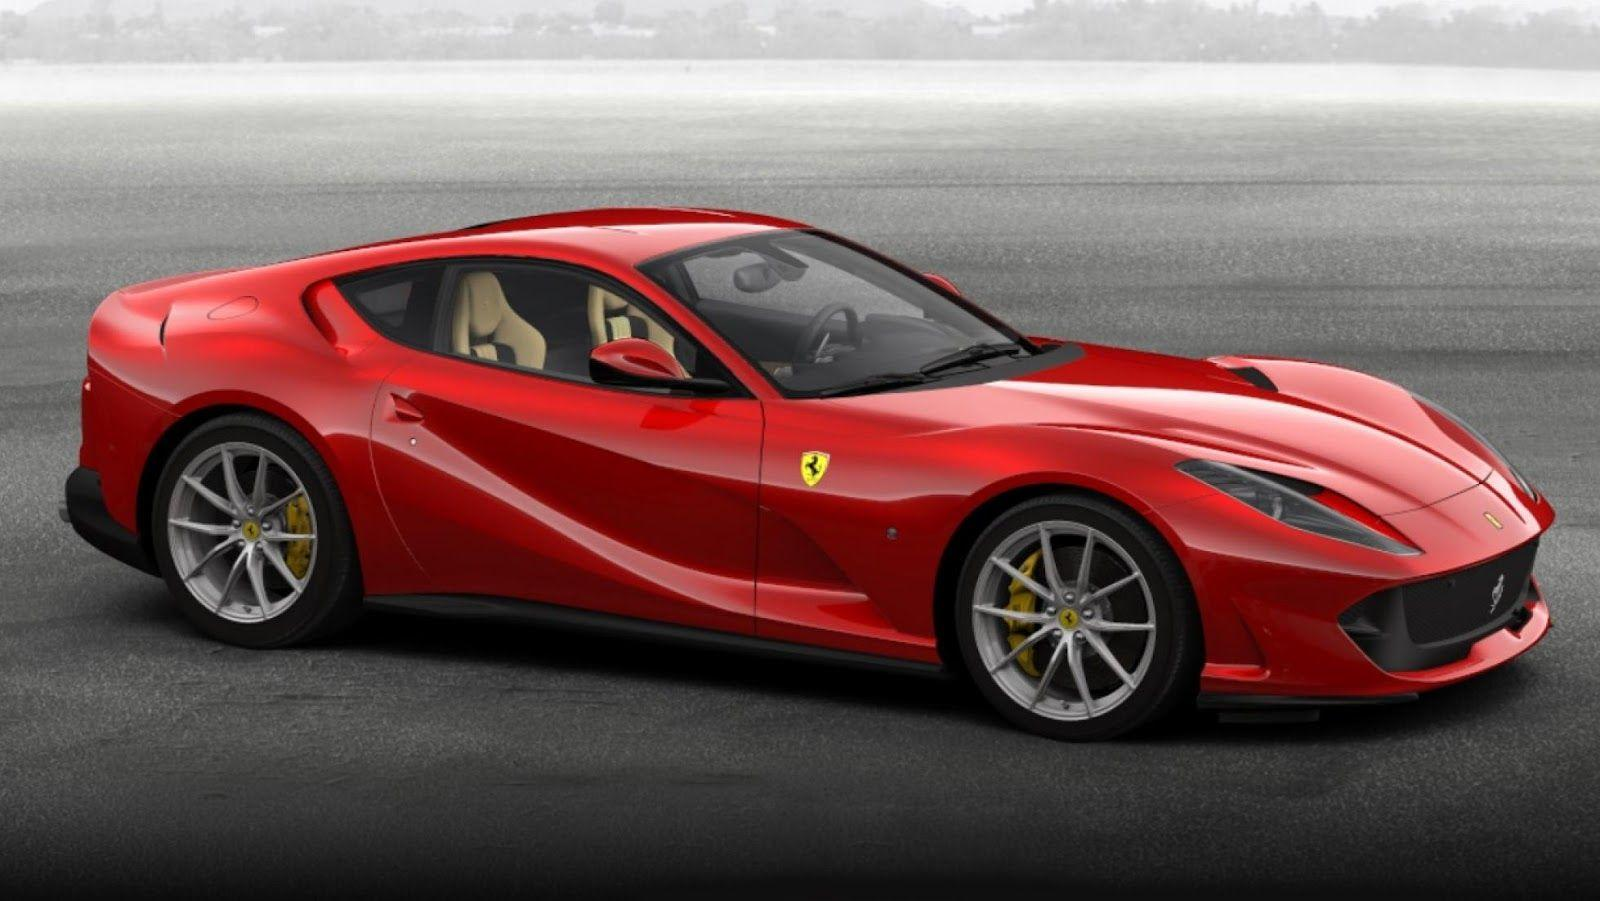 ferrari 812 superfast wallpapers wallpaper cave. Black Bedroom Furniture Sets. Home Design Ideas